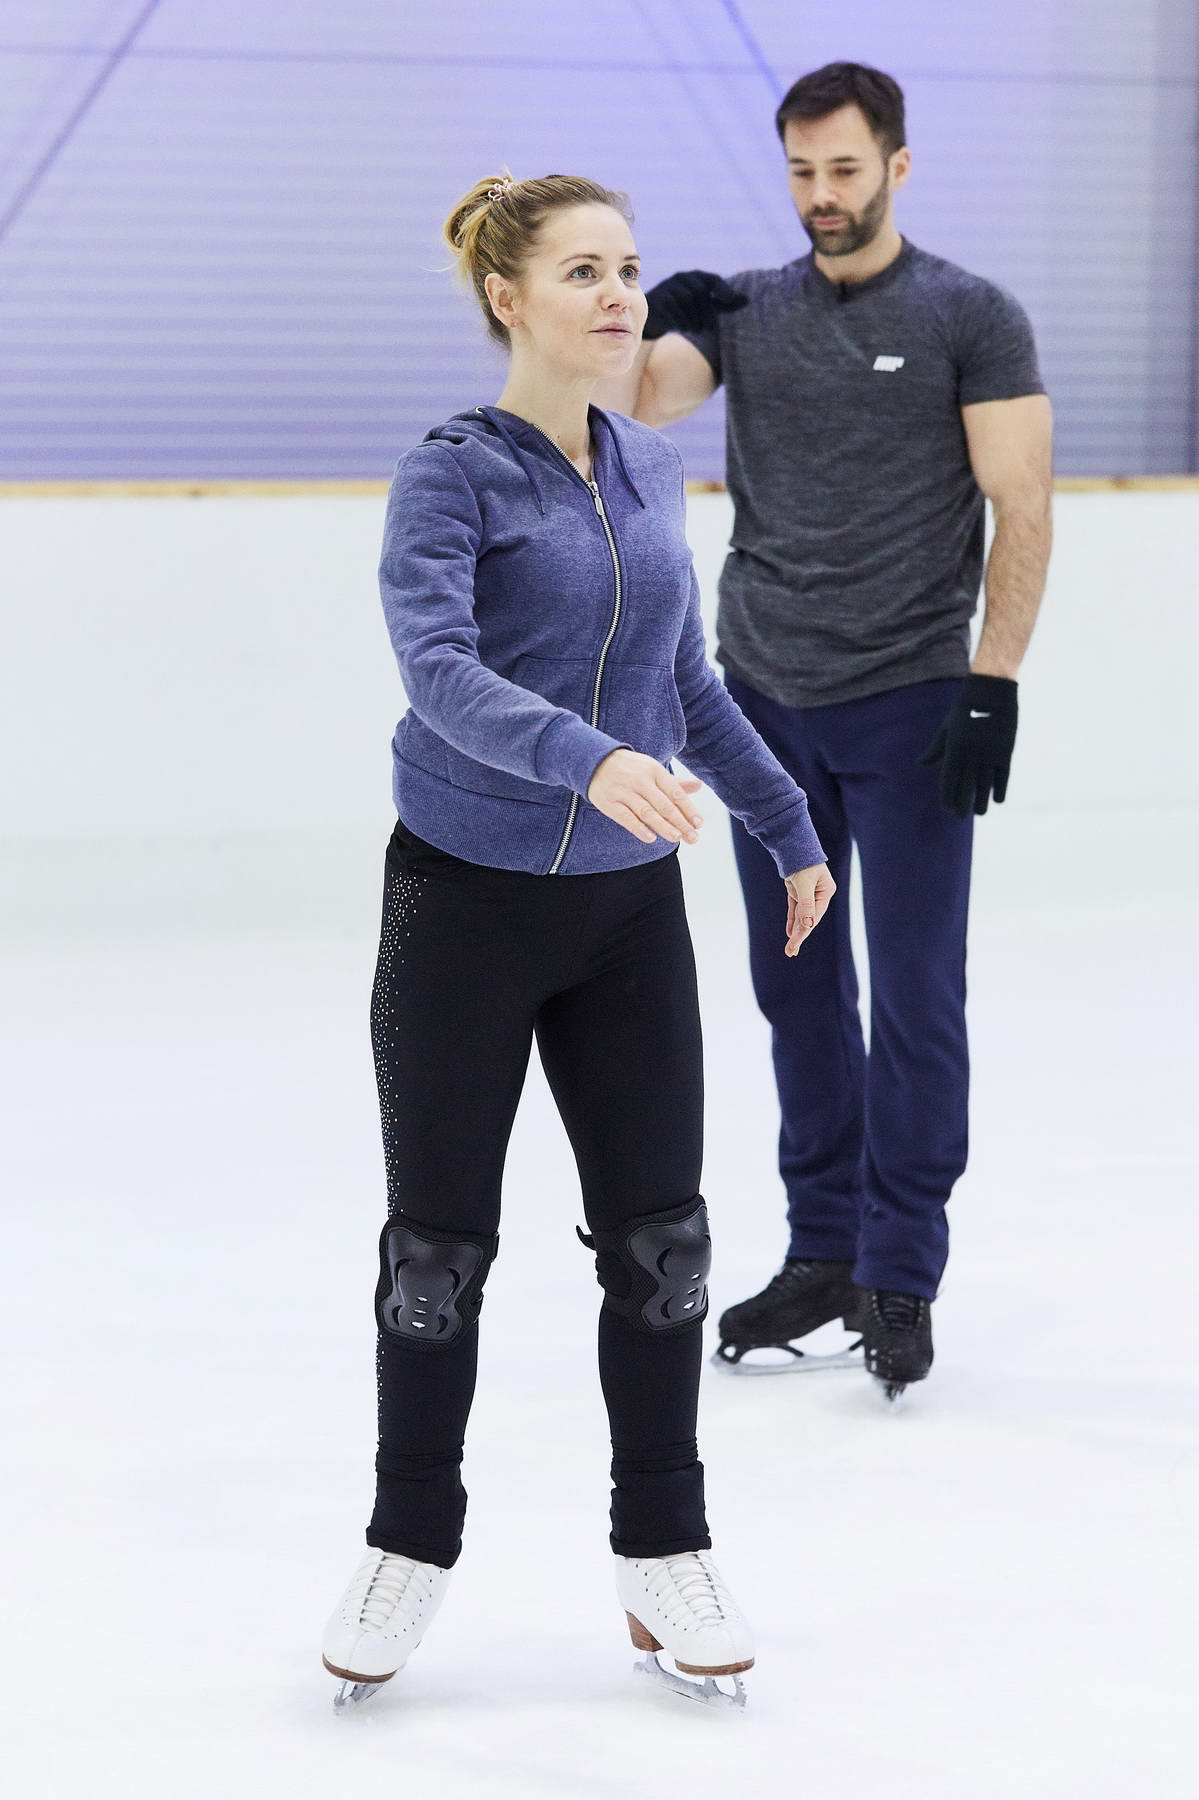 Stephanie Waring during Dancing On Ice practice session in London